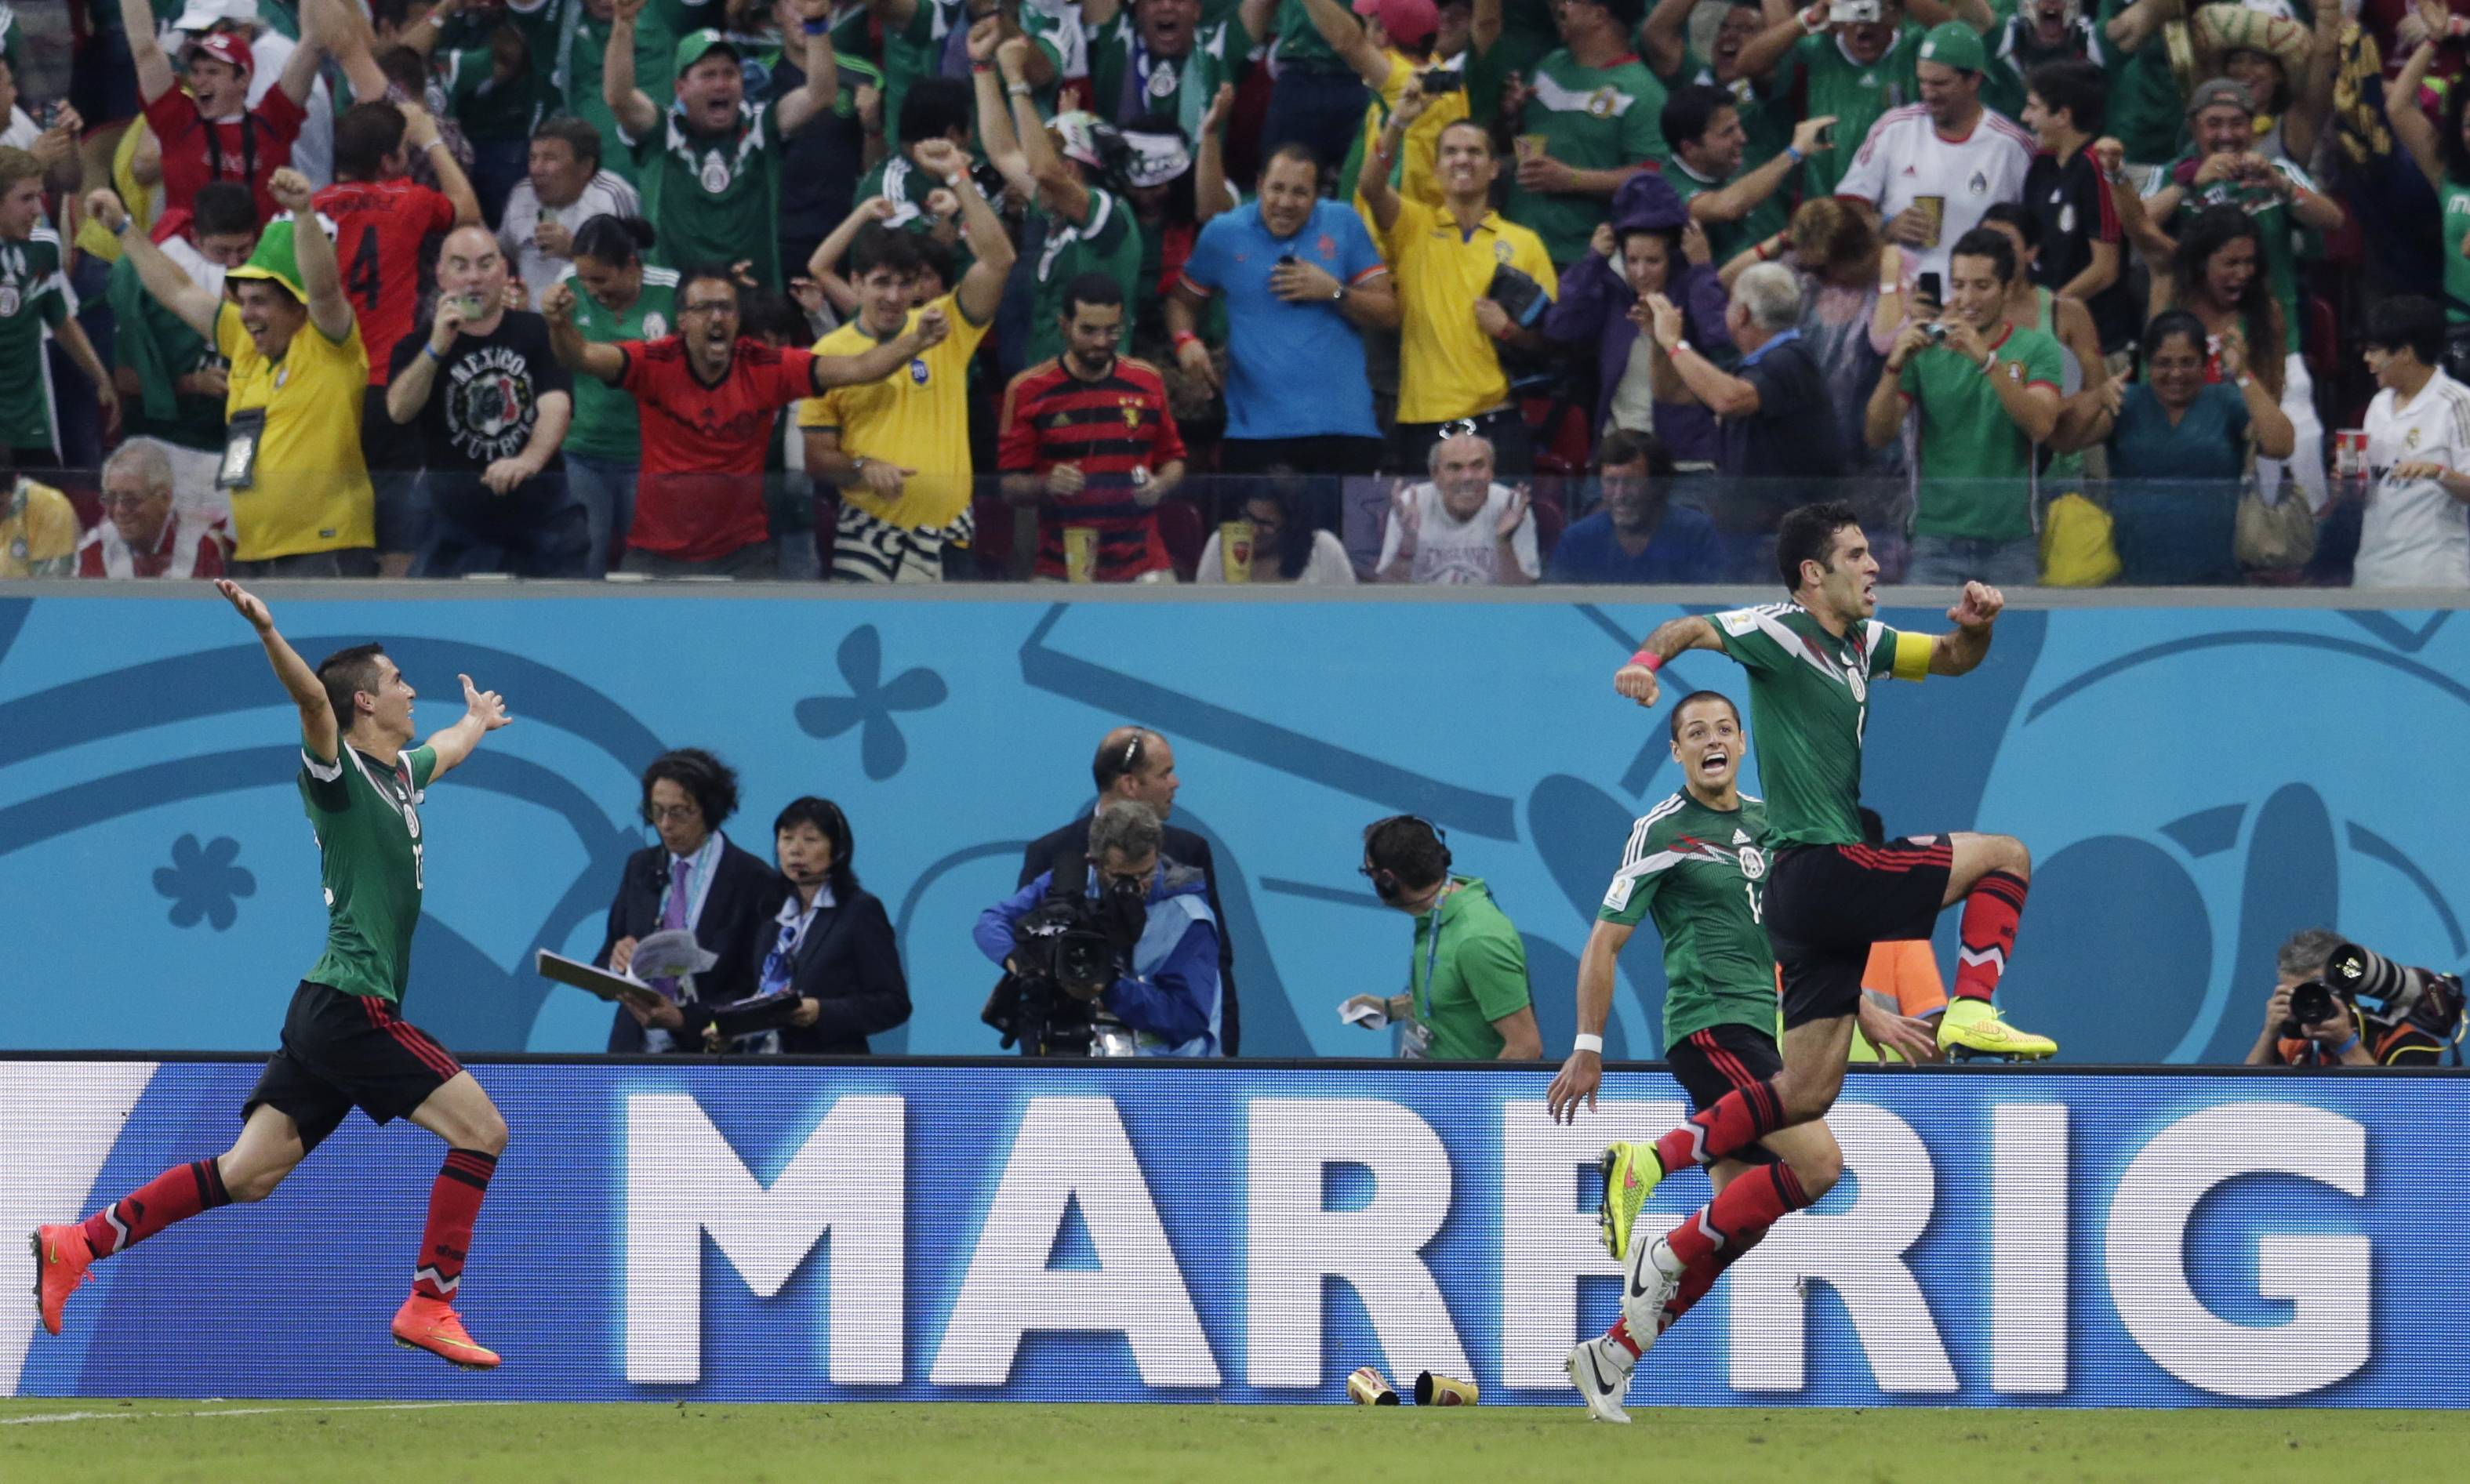 Mexico's Rafael Marquez , right, celebrates after scoring the opening goal Monday during the group A World Cup soccer match between Croatia and Mexico at the Arena Pernambuco in Recife, Brazil.